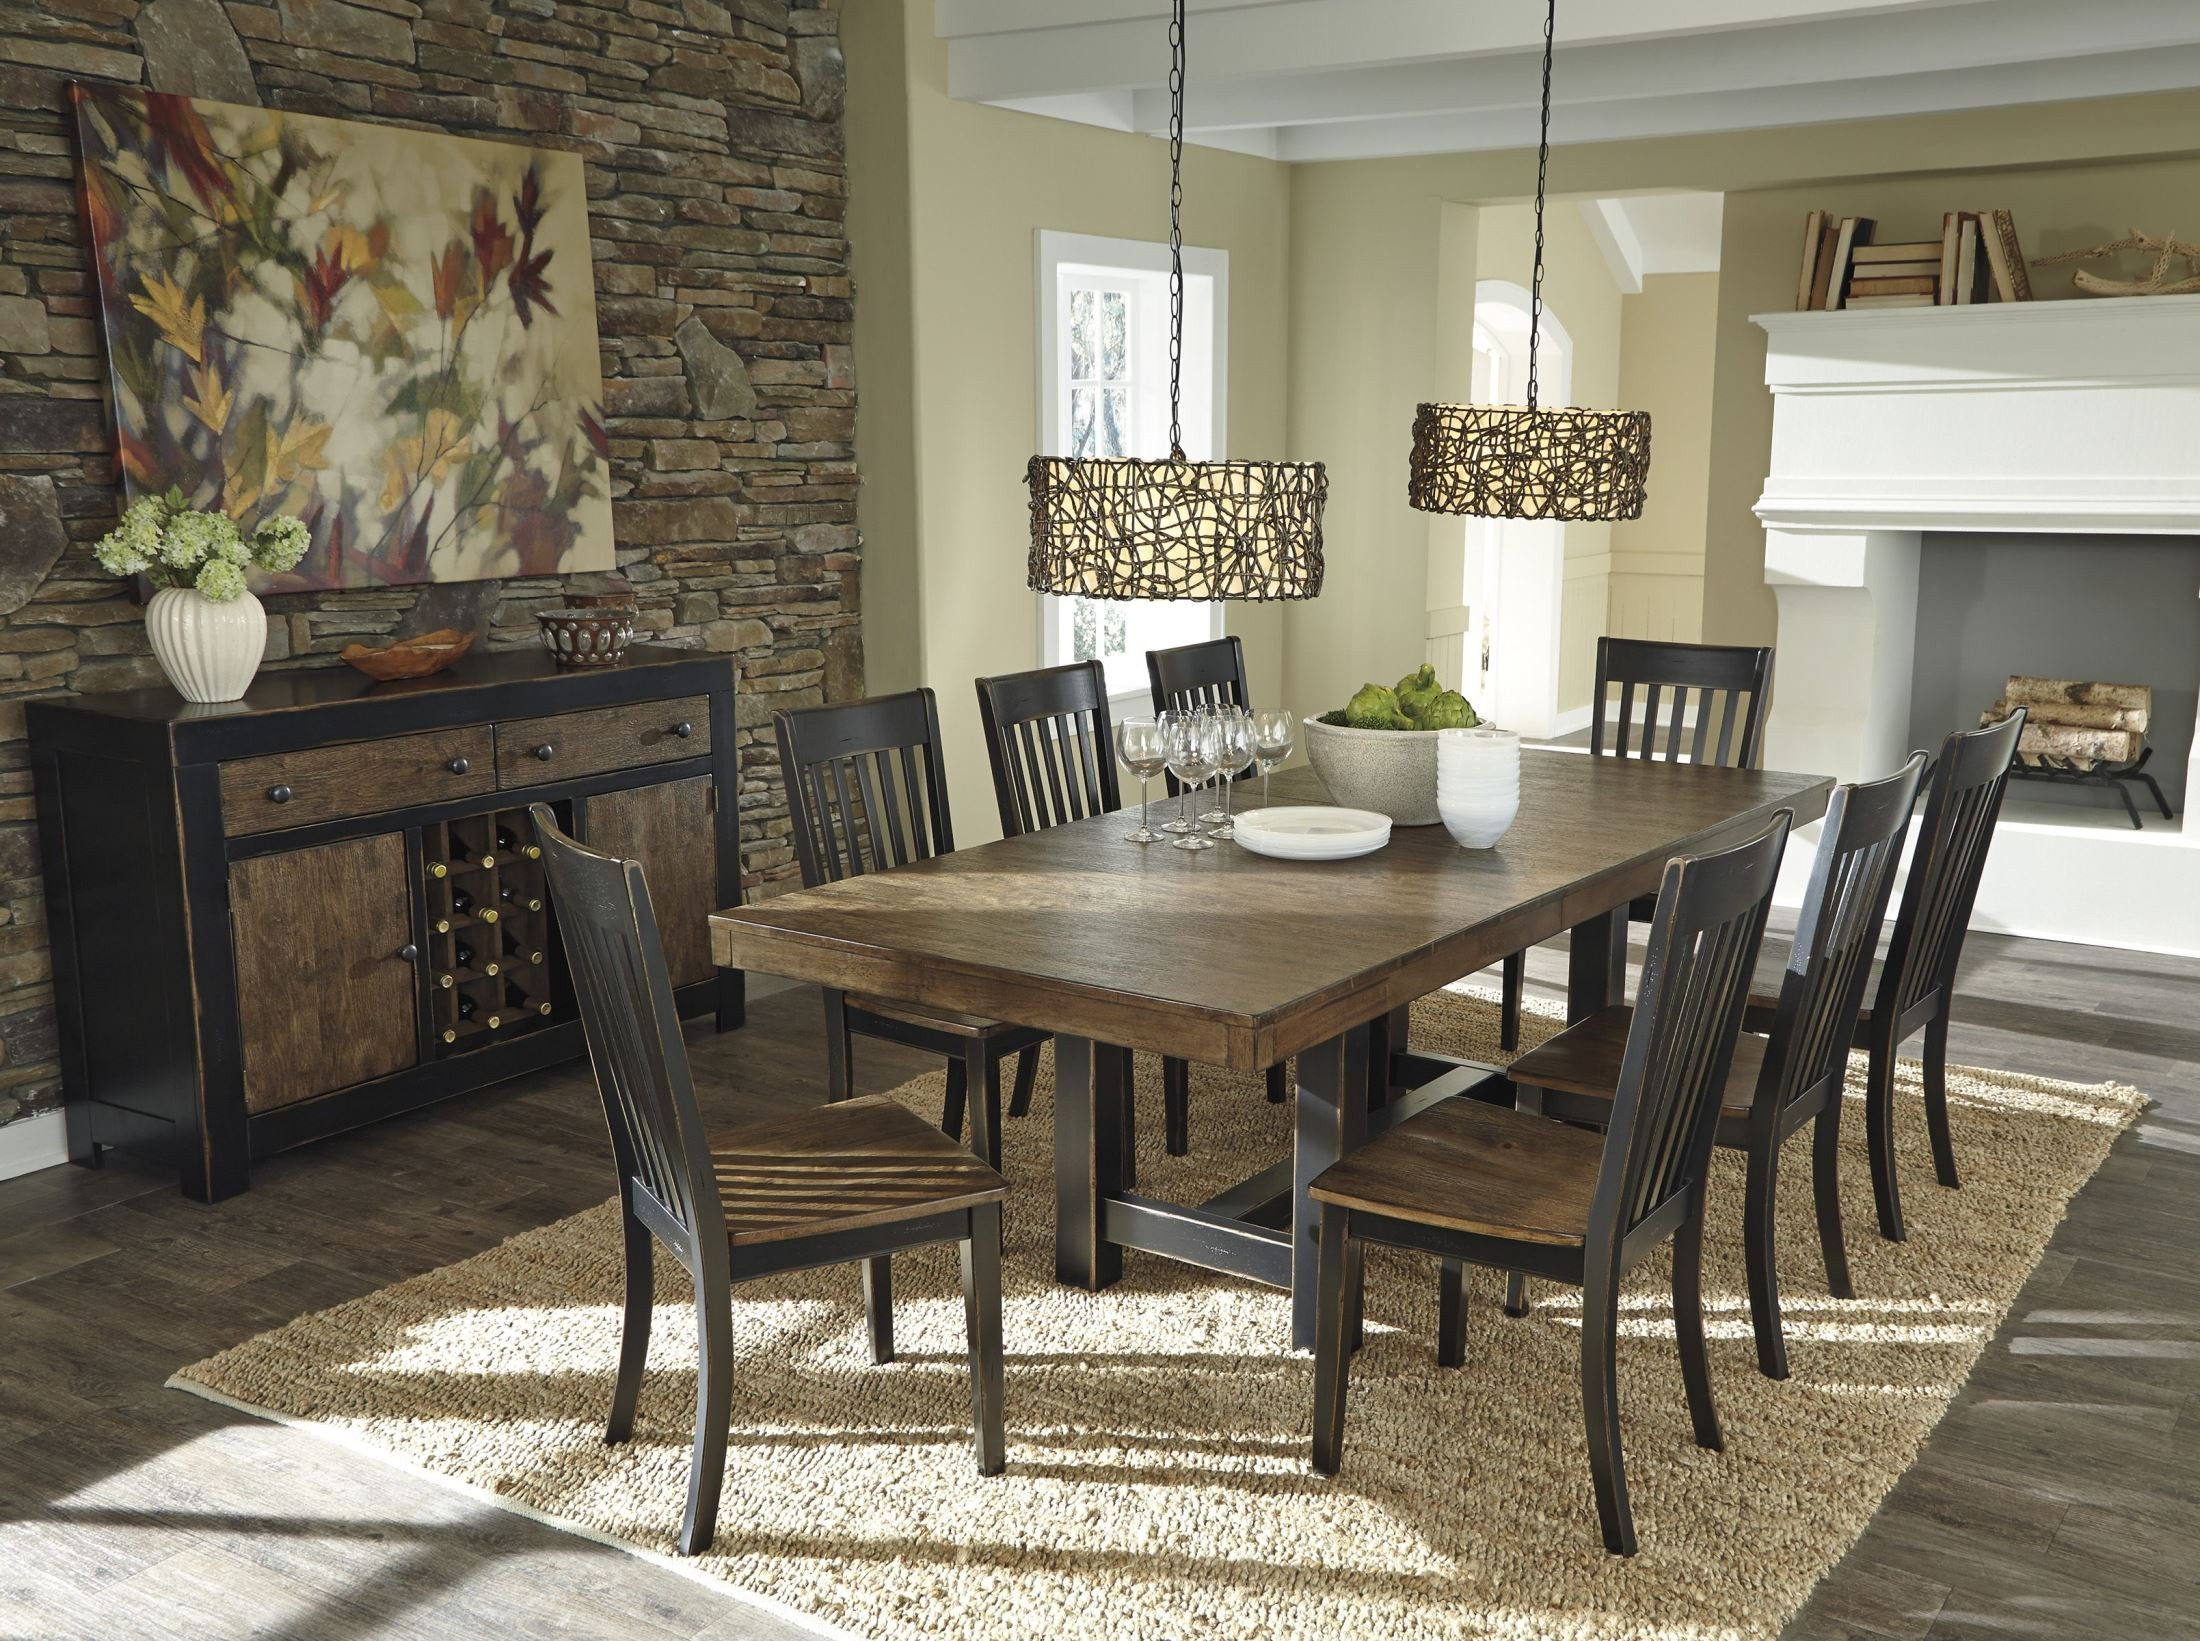 emerfield two tone brown rectangular extendable dining room set from ashley d563 35 coleman. Black Bedroom Furniture Sets. Home Design Ideas